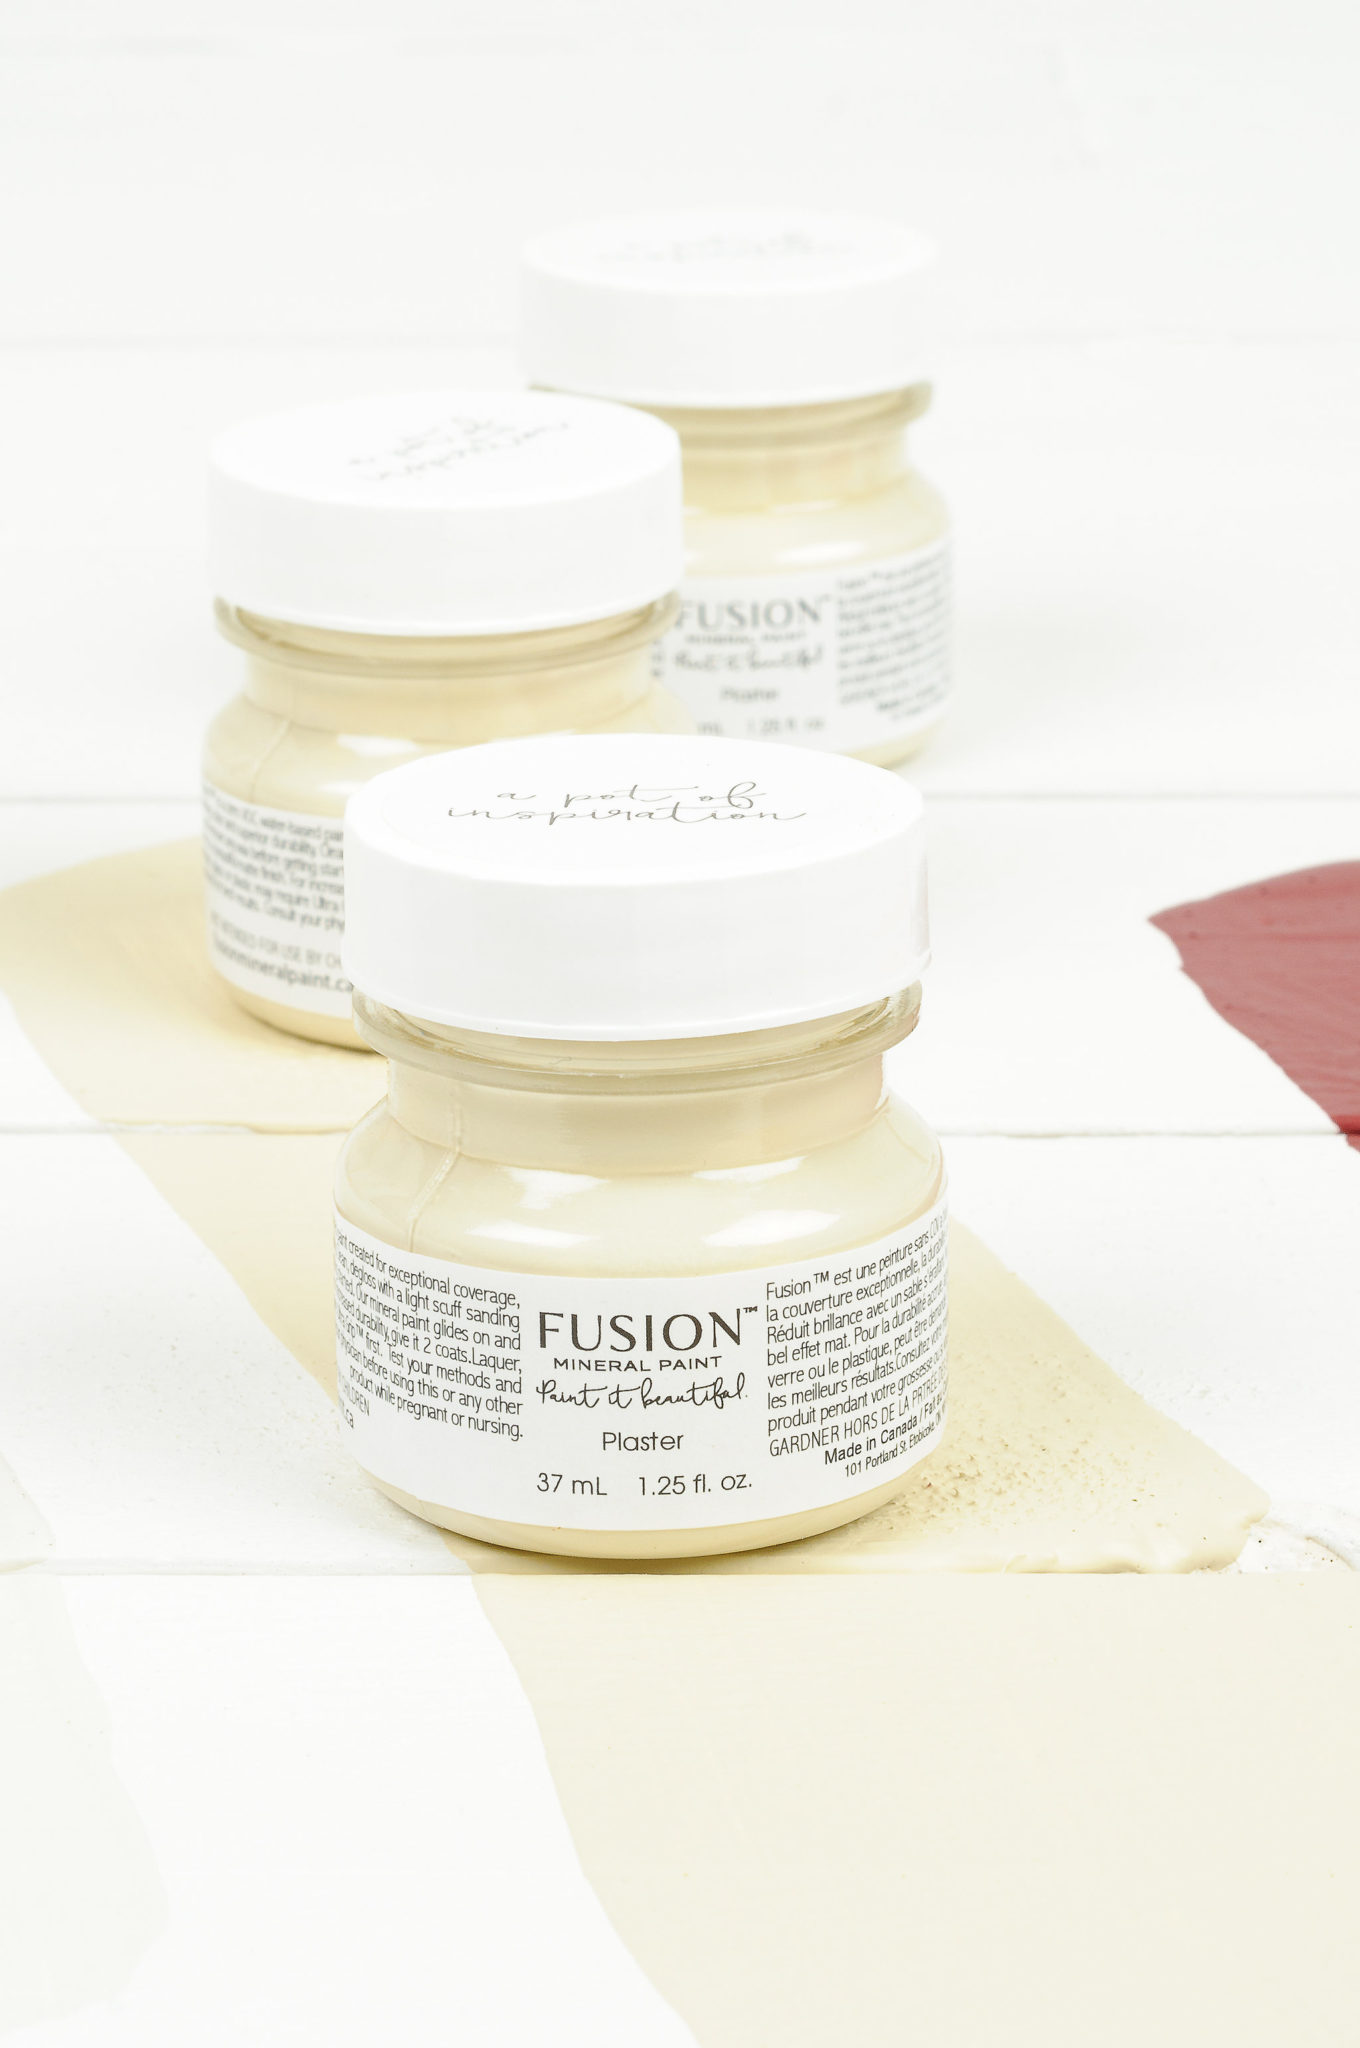 Plaster tester fusion mineral paint